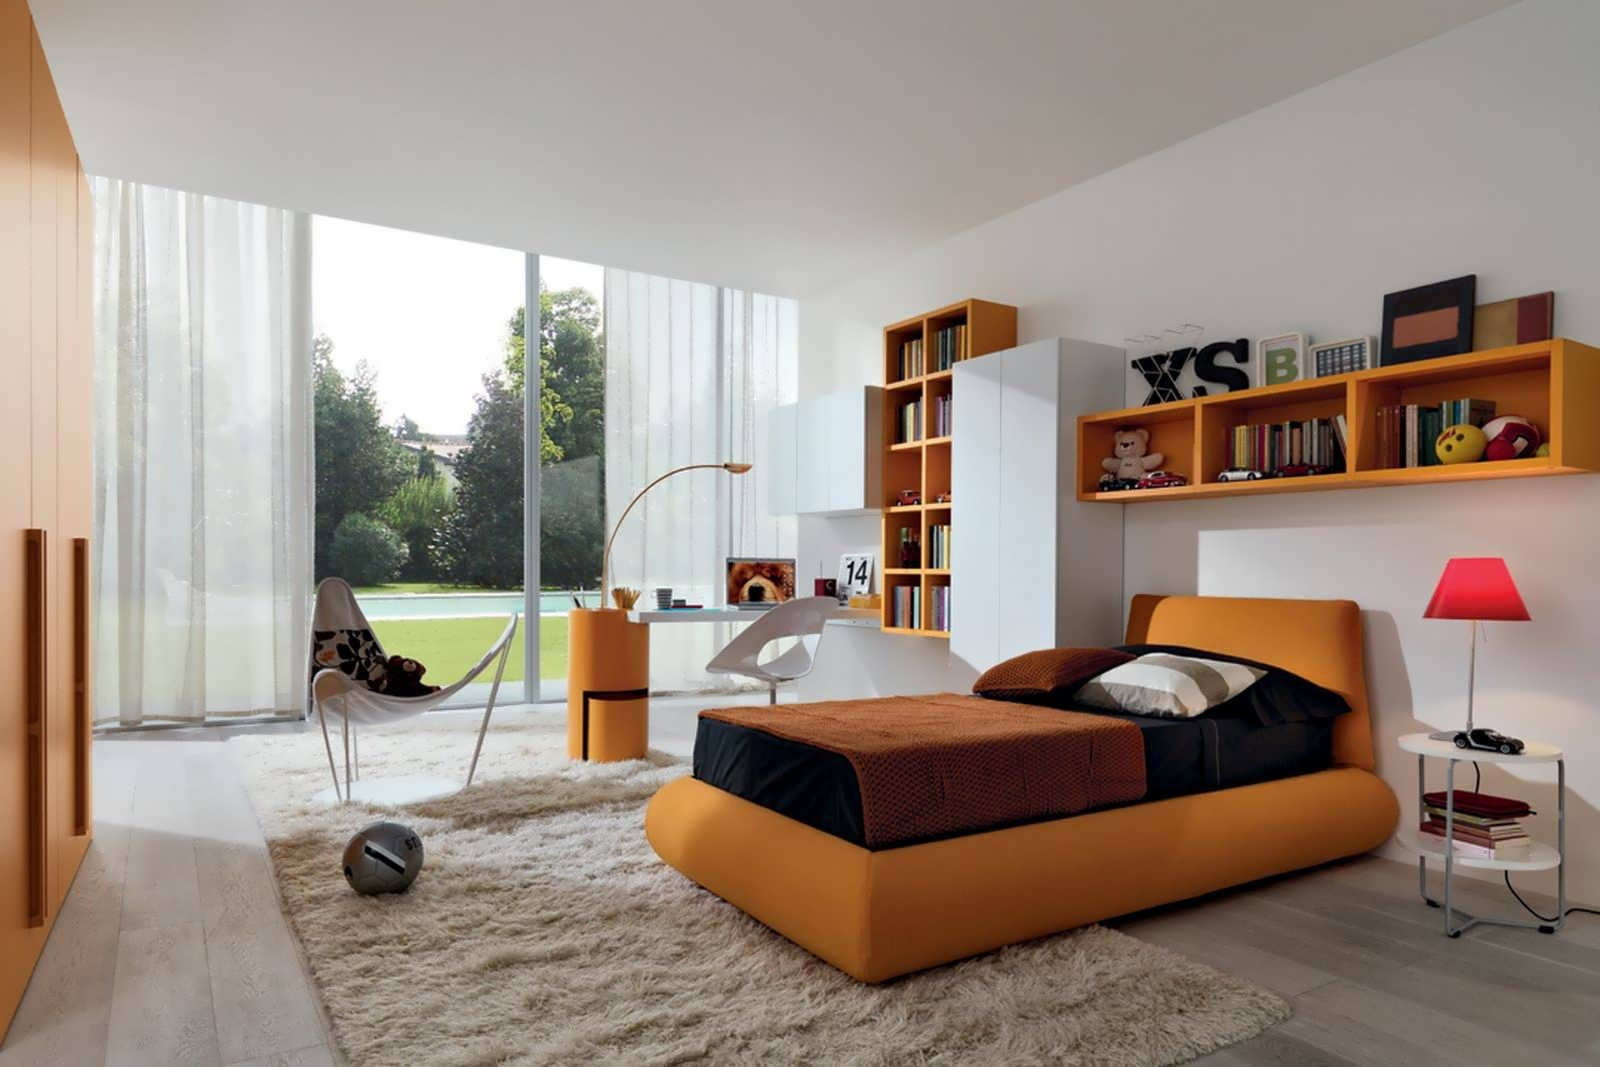 Living Room Ideas Young Adults london themed bedroom better than bedroom themes young adults